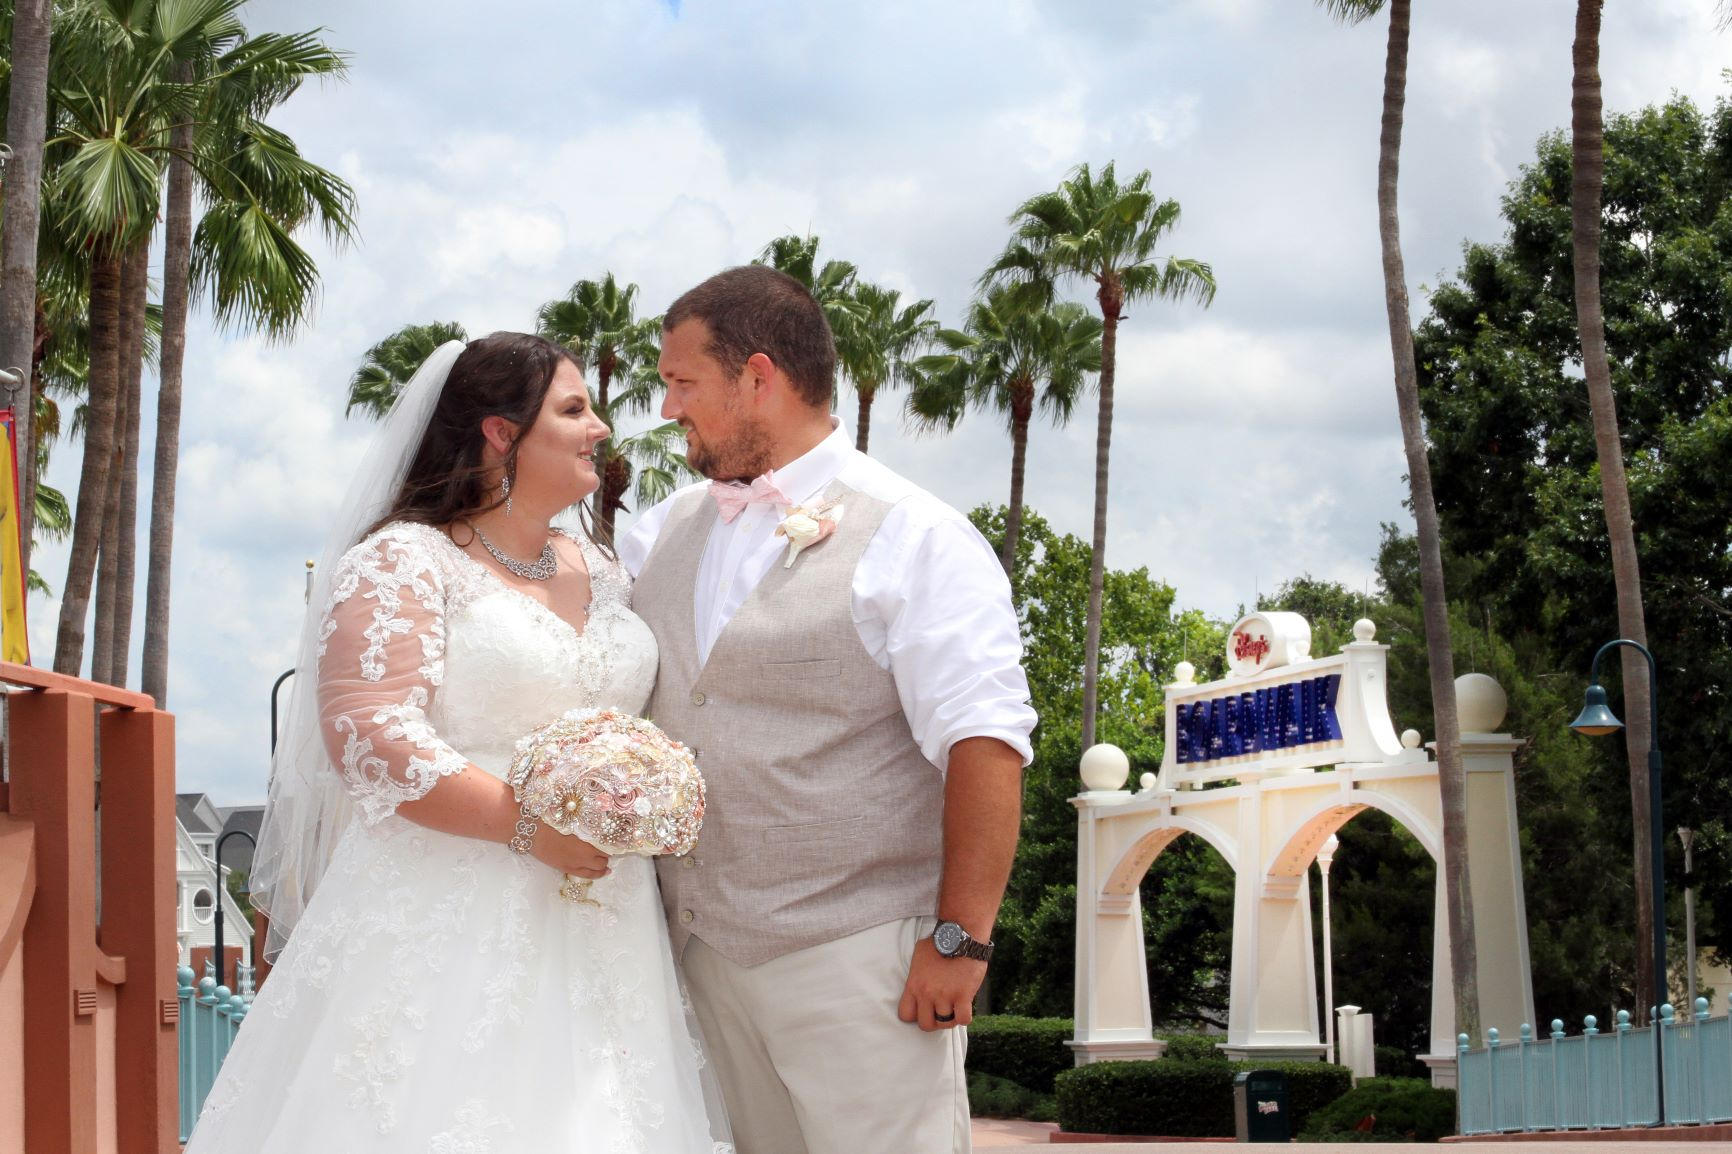 Disney Wedding Packages | The Swan Wedding of Amber and Chris